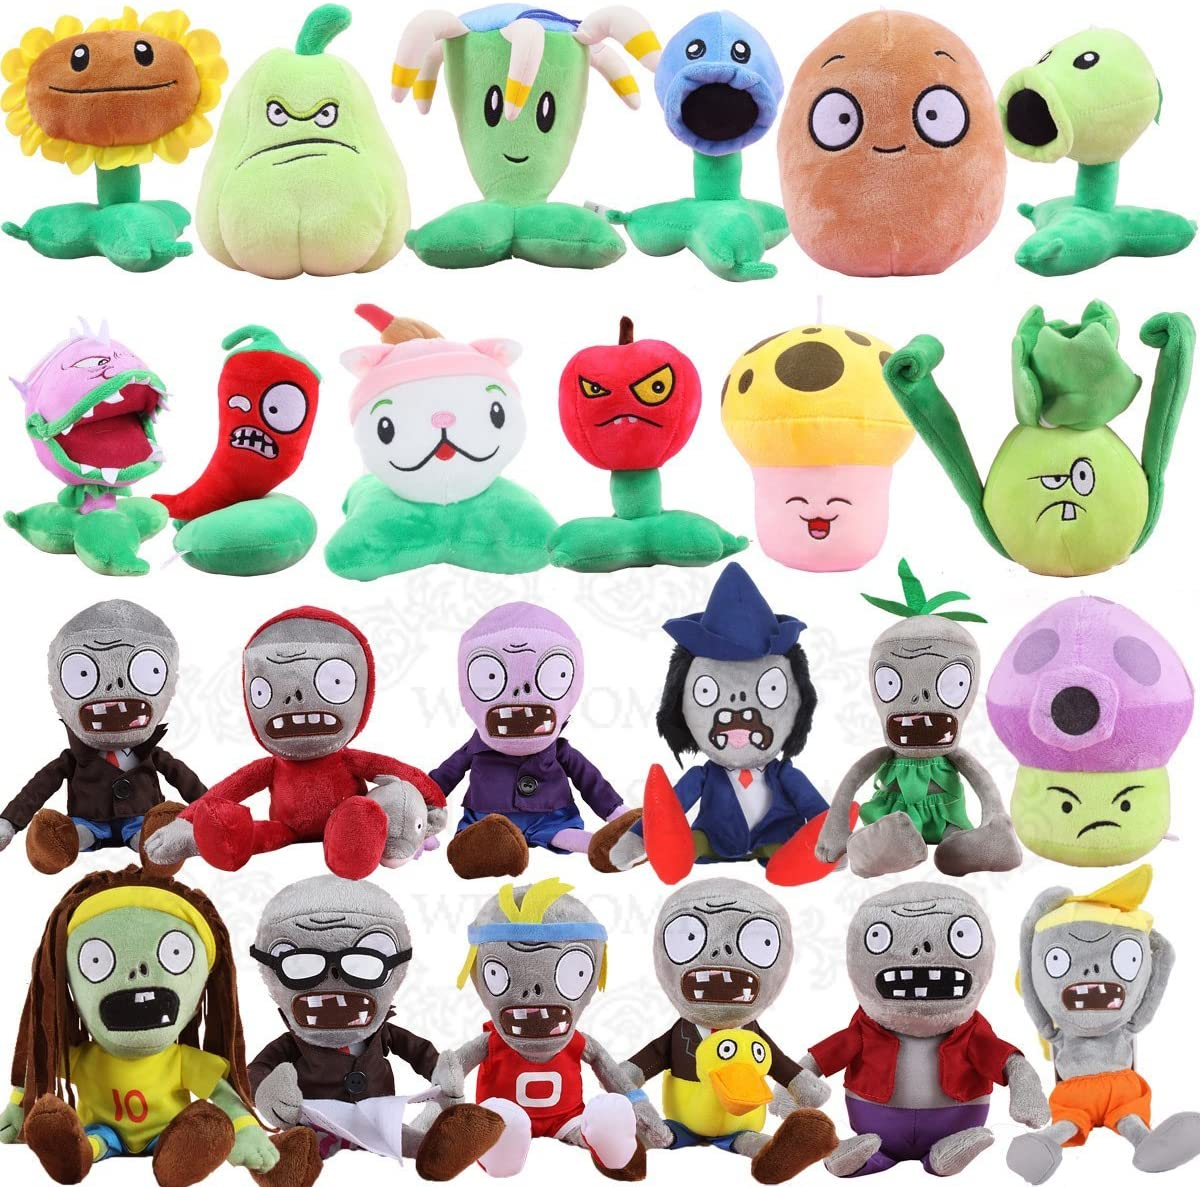 Plants vs Zombies Plush Toy PVZ Games Hula Zombie Stuffed Figrue Doll Gift 28cm